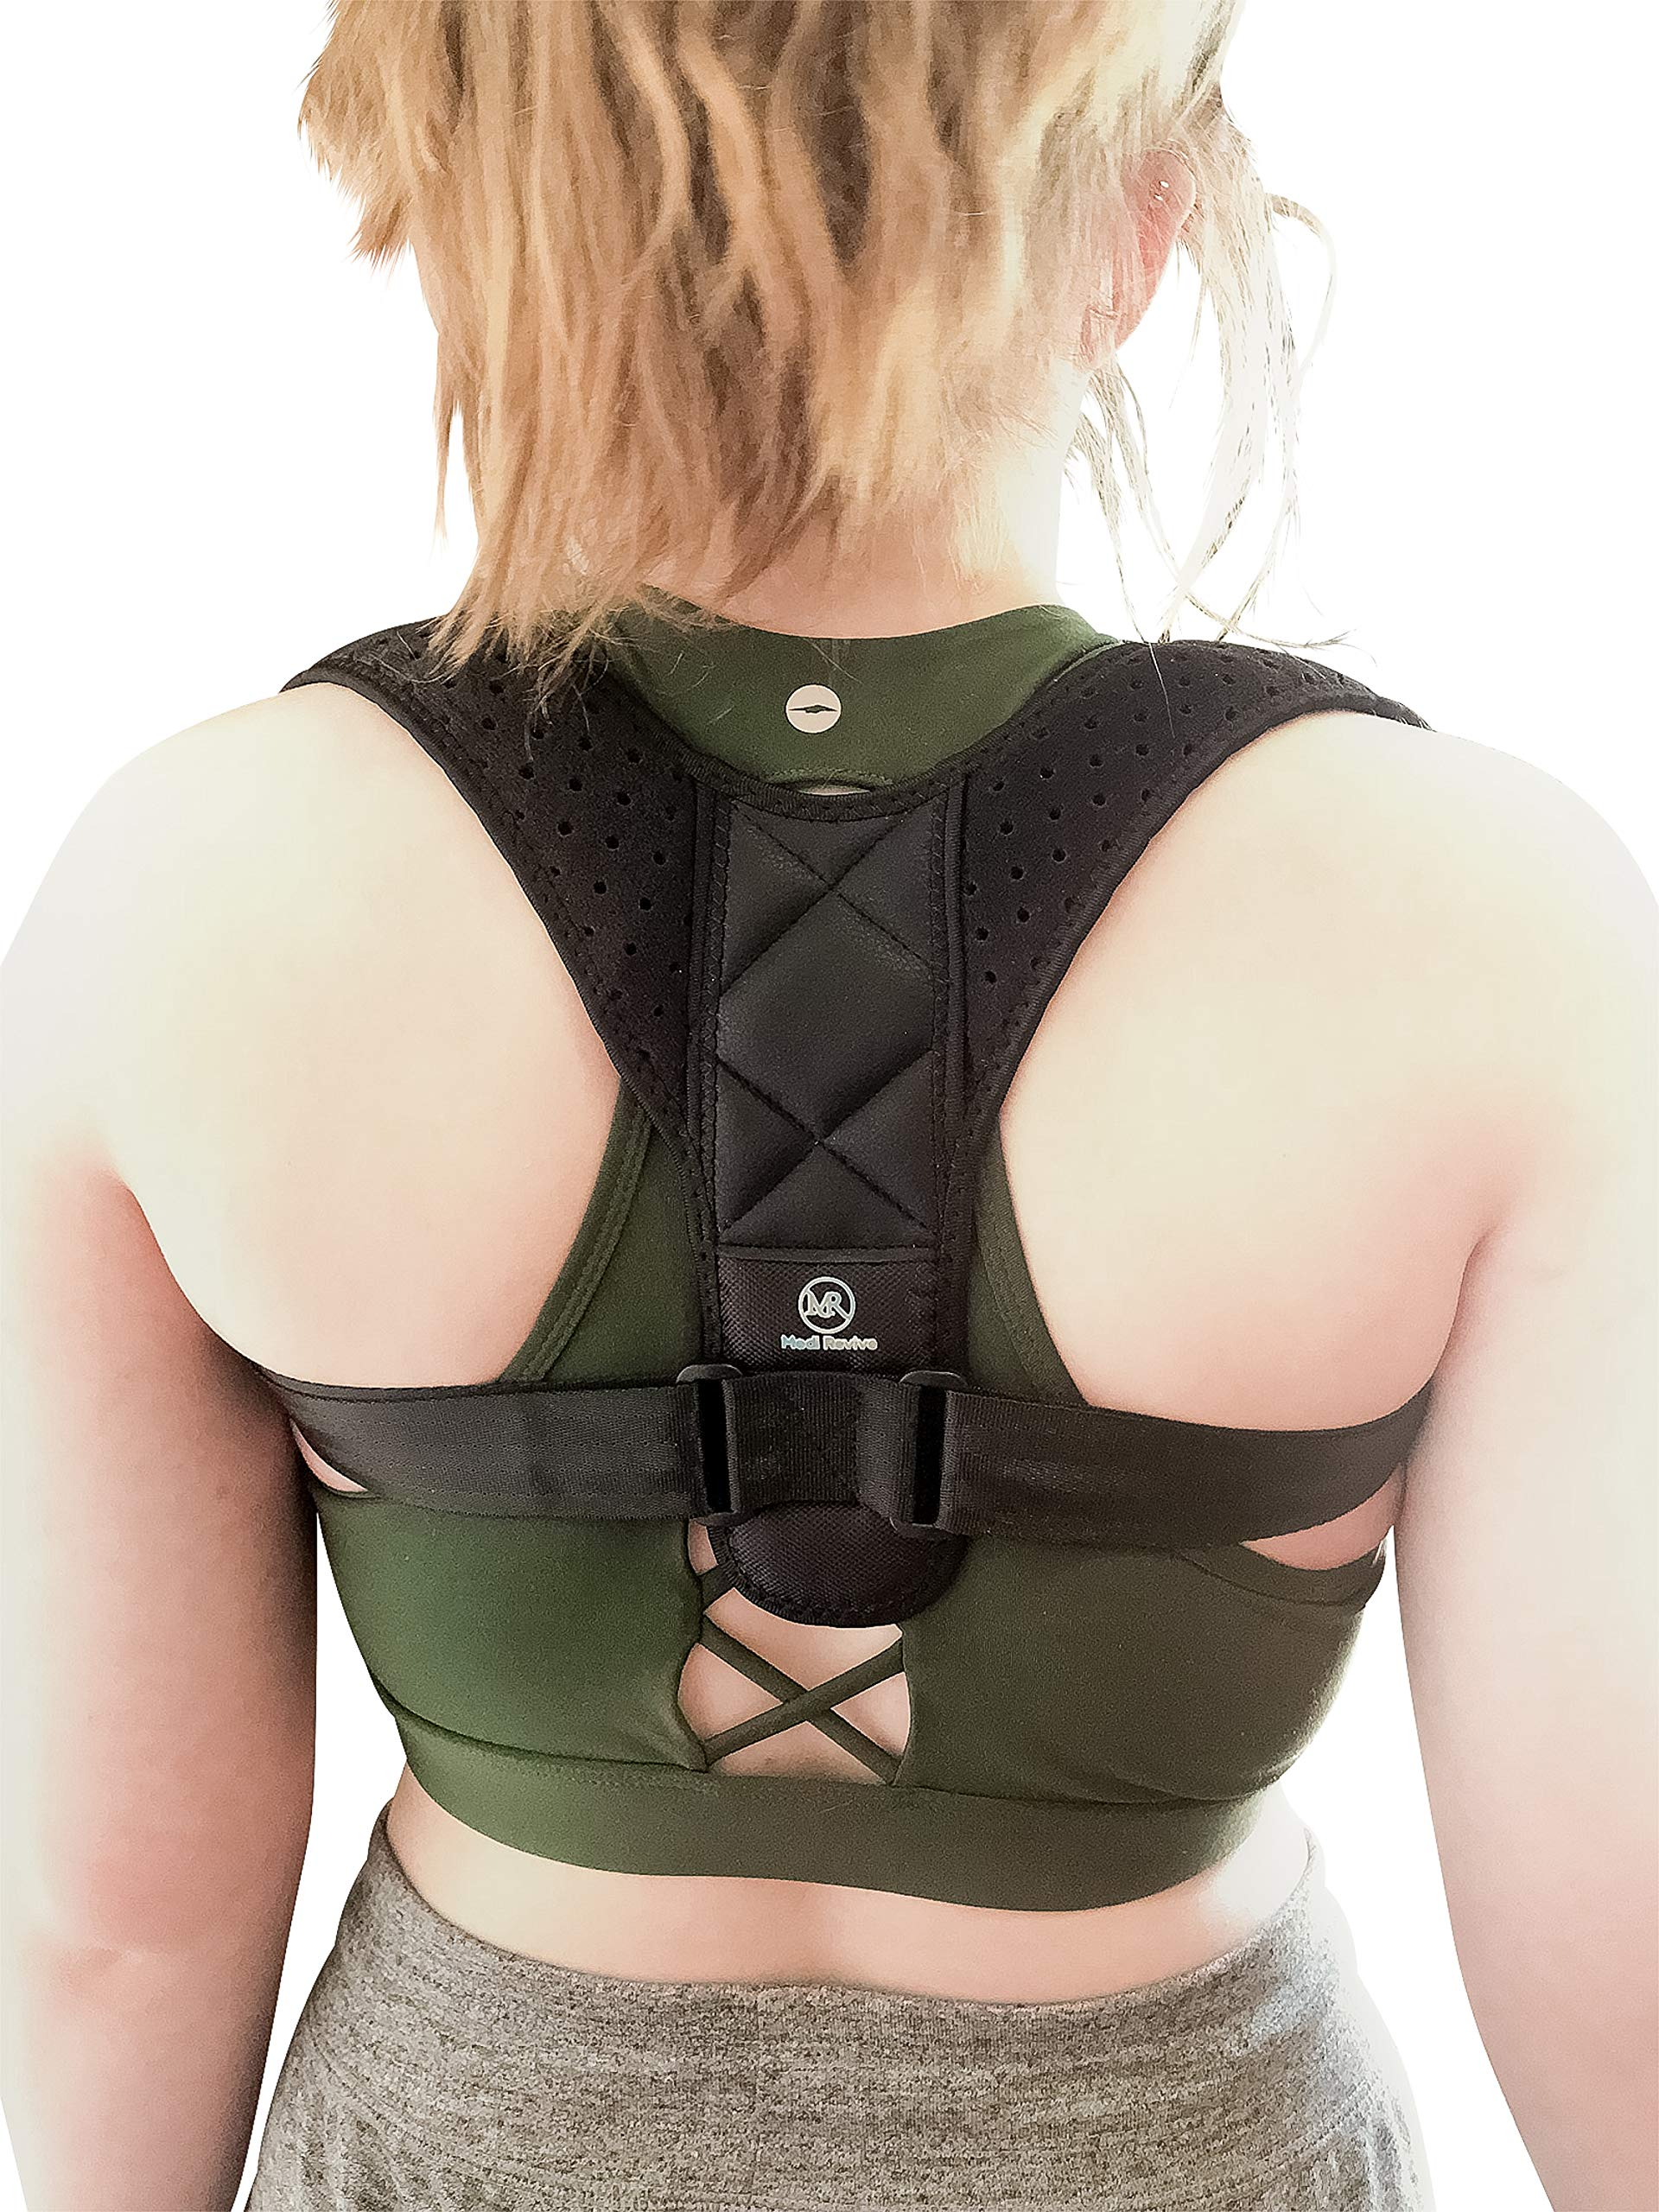 Back Posture Corrector by MediRevive - Discrete Comfortable Adjustable Brace - for Women, Men, Teens and Kids - Premium Breathable Upper Shoulder and Clavicle Support Relieves Discomfort